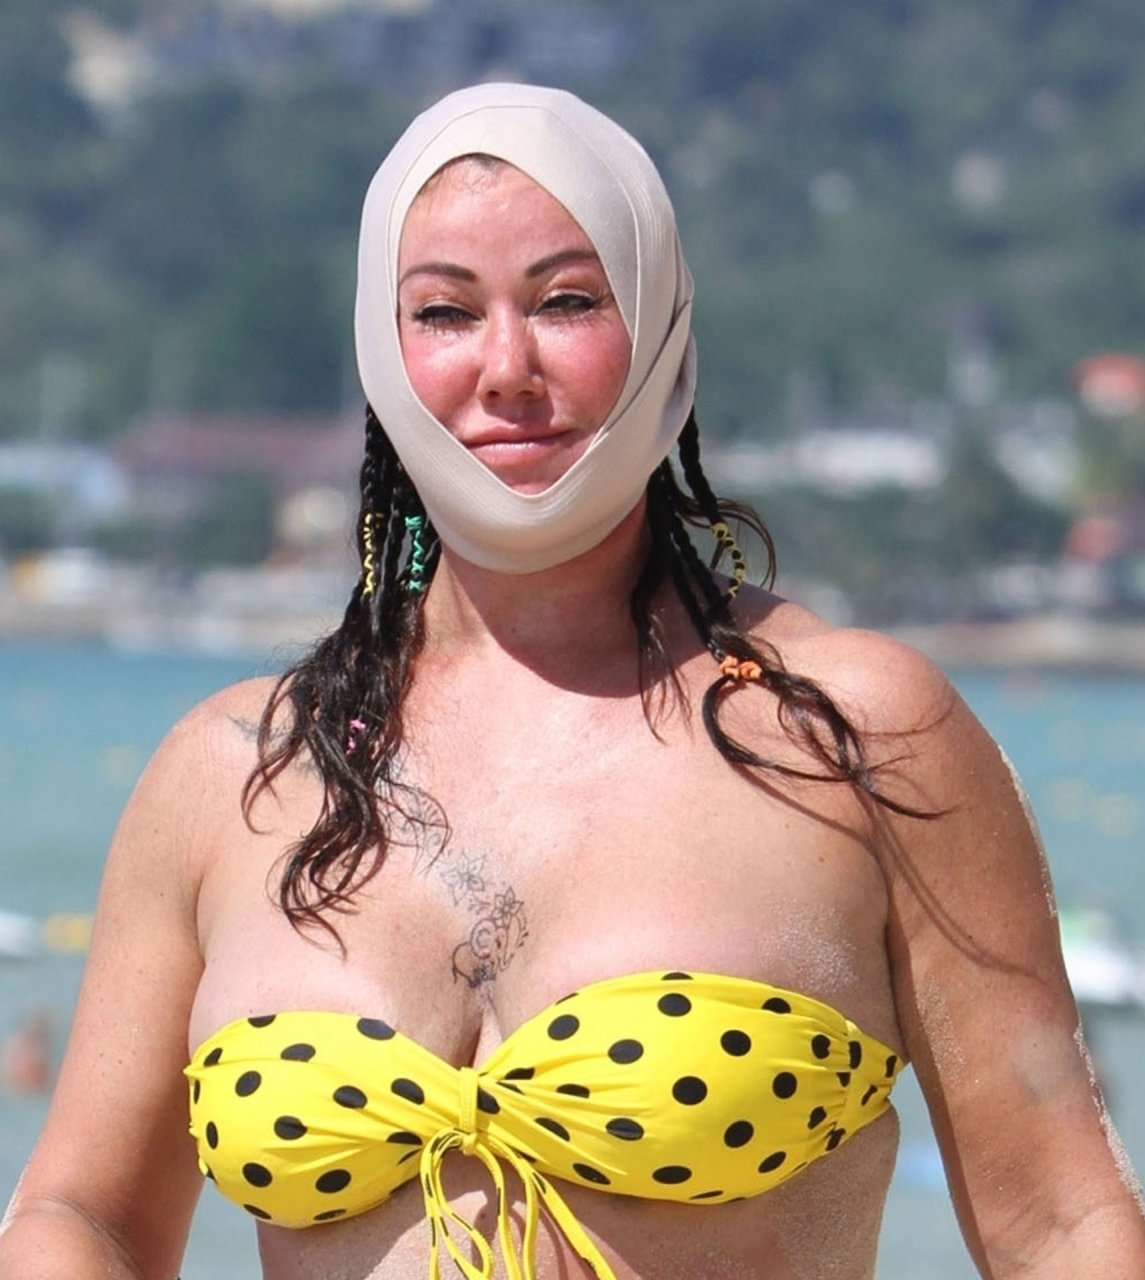 Lisa Appleton having fun on the beaches on holiday in the far east, 26-11-2018